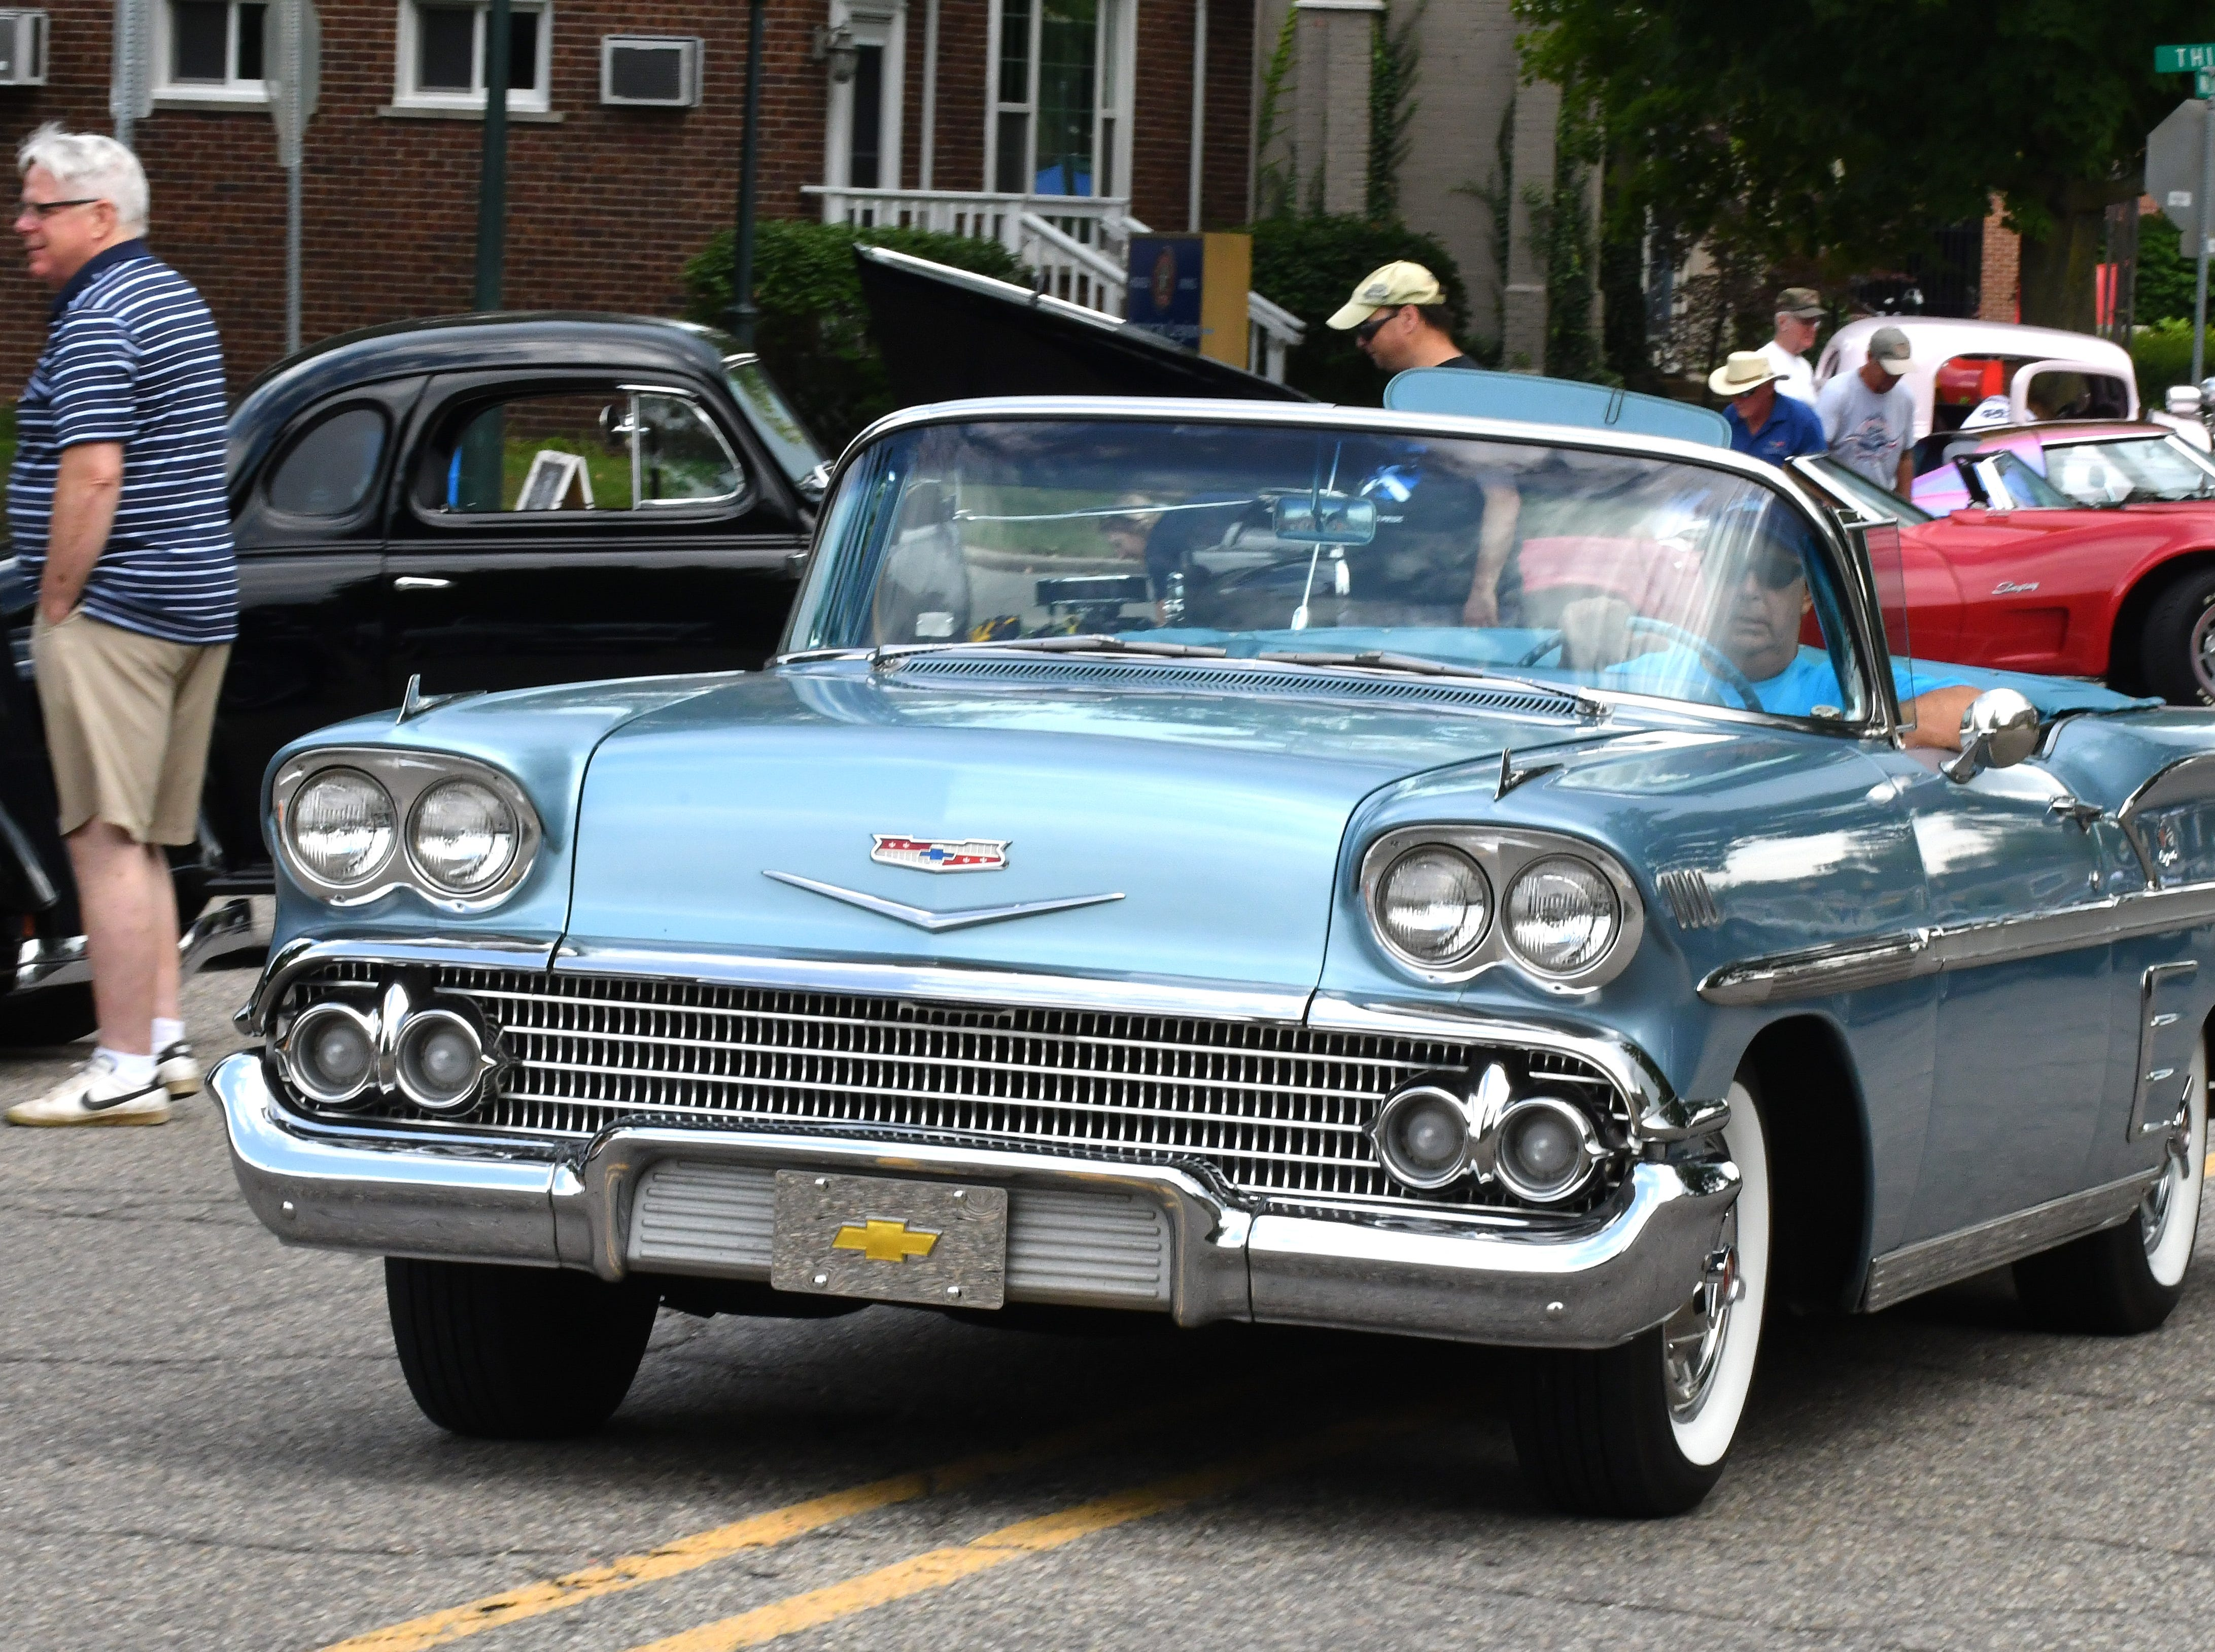 A 1958 Impala at the 19th annual Rockin Rods n' Rochester in Rochester, Aug. 12, 2018.